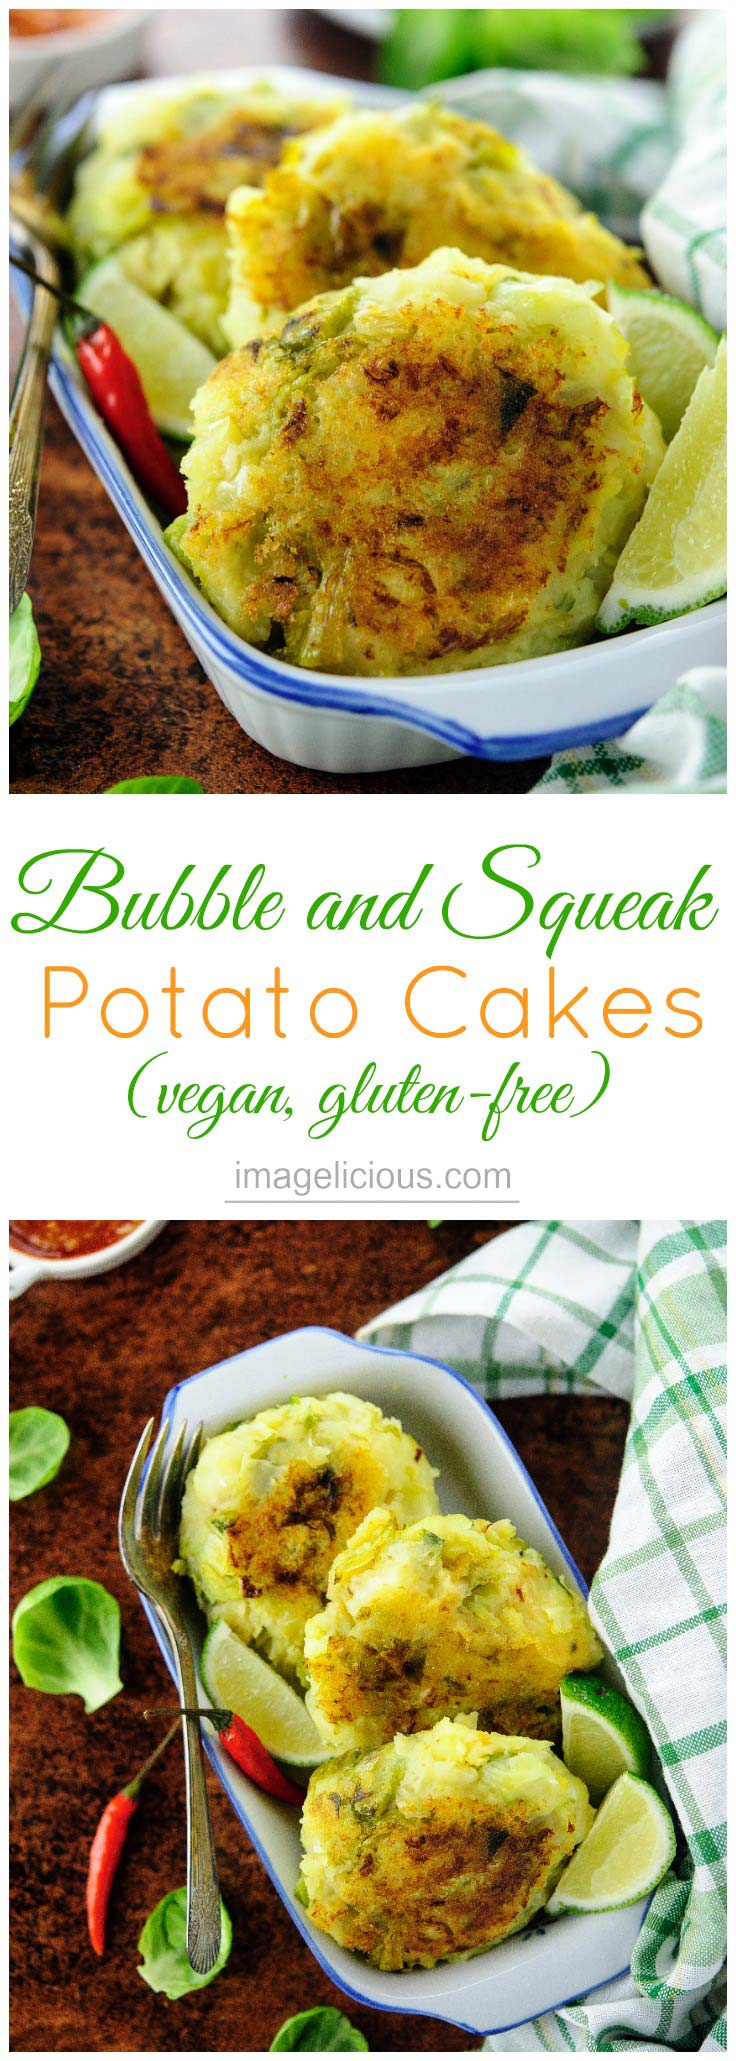 Bubble and Squeak or Potato and Brussels Sprouts Cakes are a delicious side dish and perfect way to use leftover potatoes. These cakes are vegan and gluten-free and can be made with variety of leftover vegetables and different spices | Imagelicious